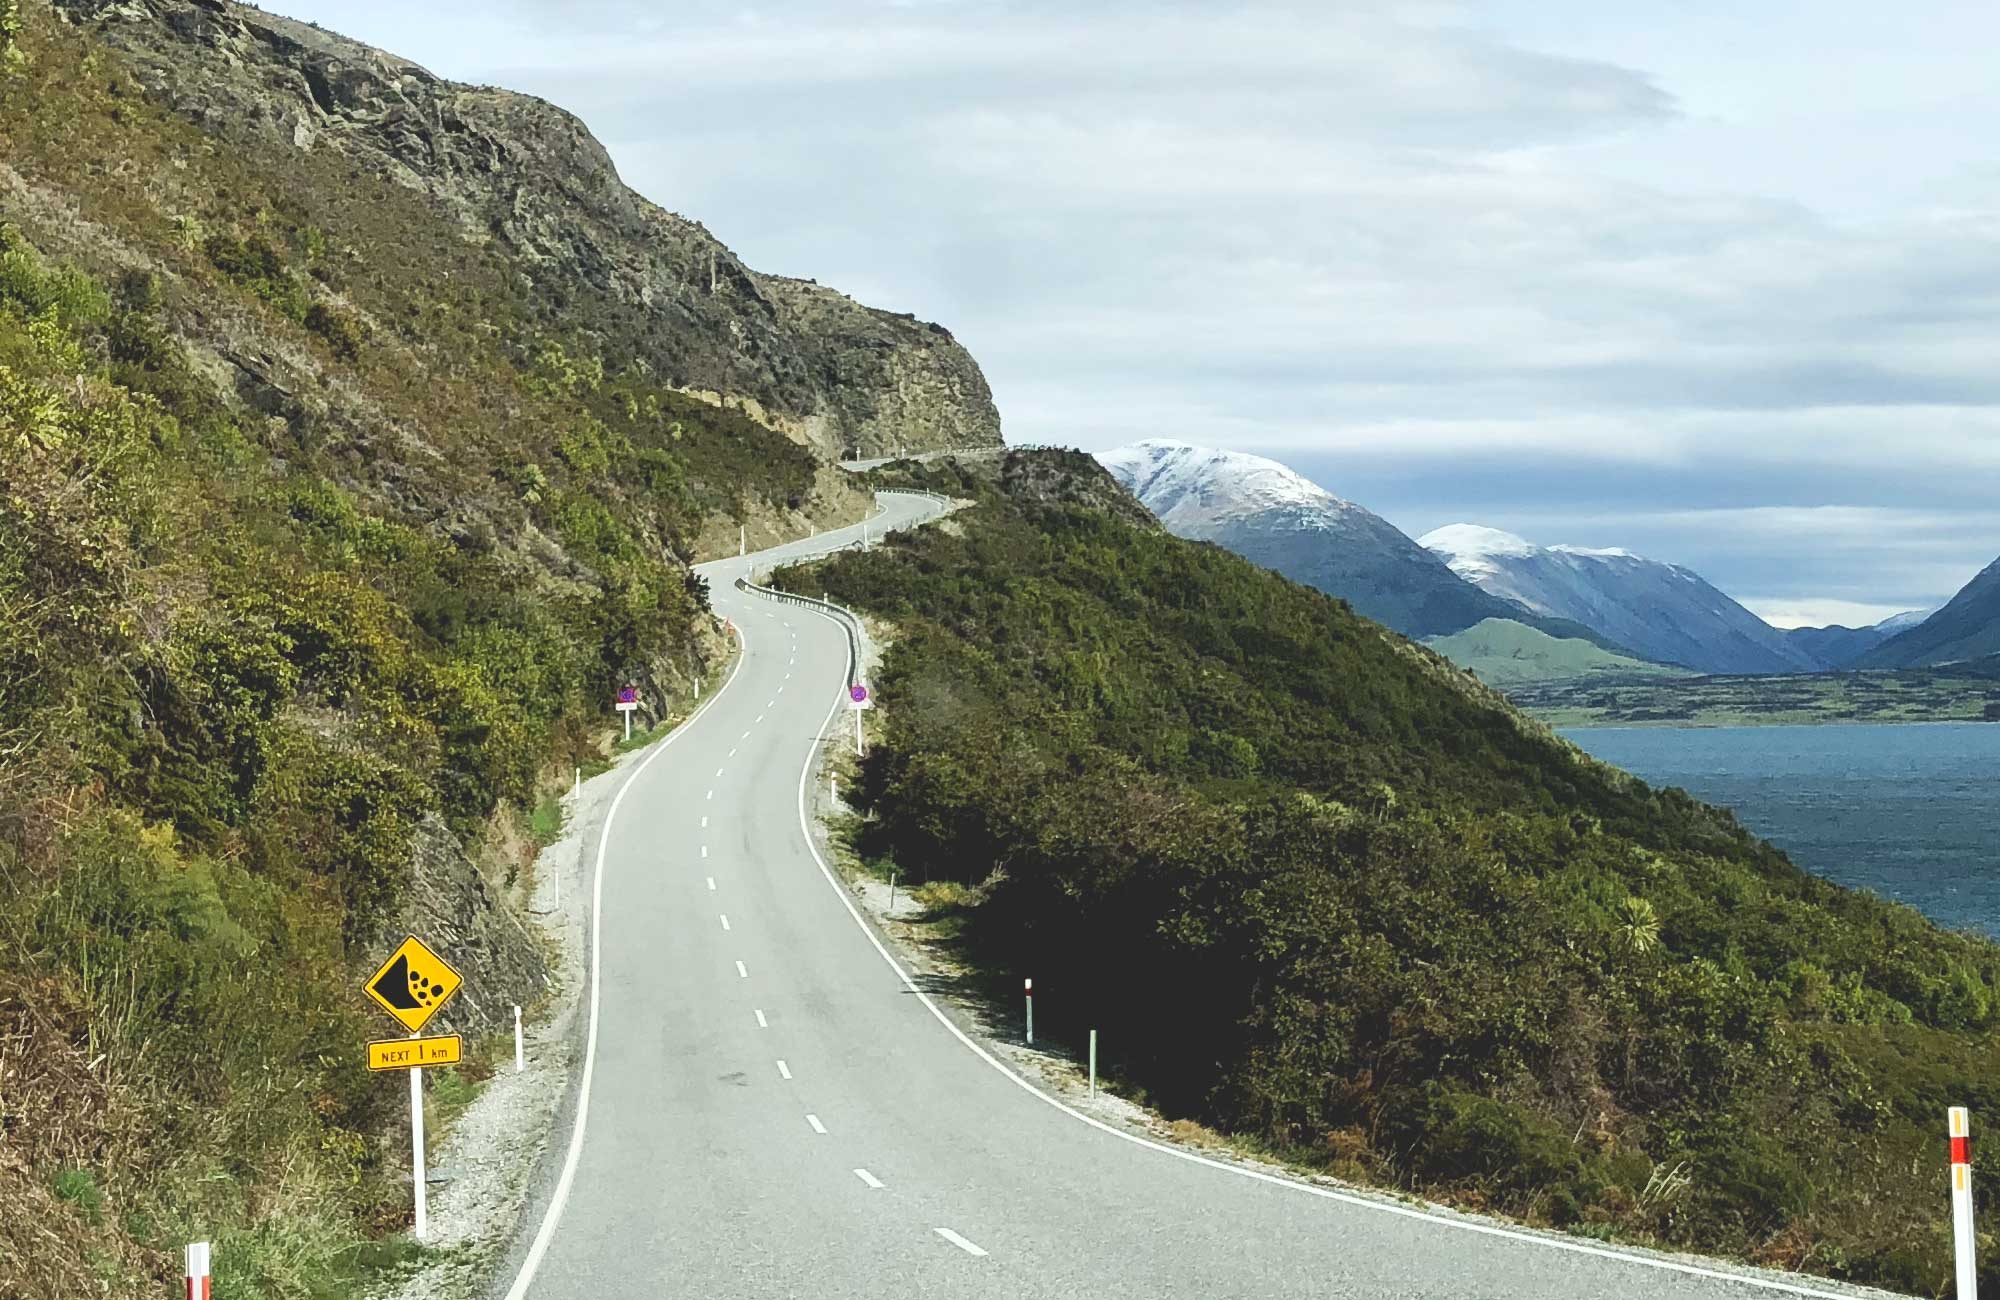 A twisty section of Queenstown to Glenorchy Road climbing up a mountain side with snow capped mountains in the background.